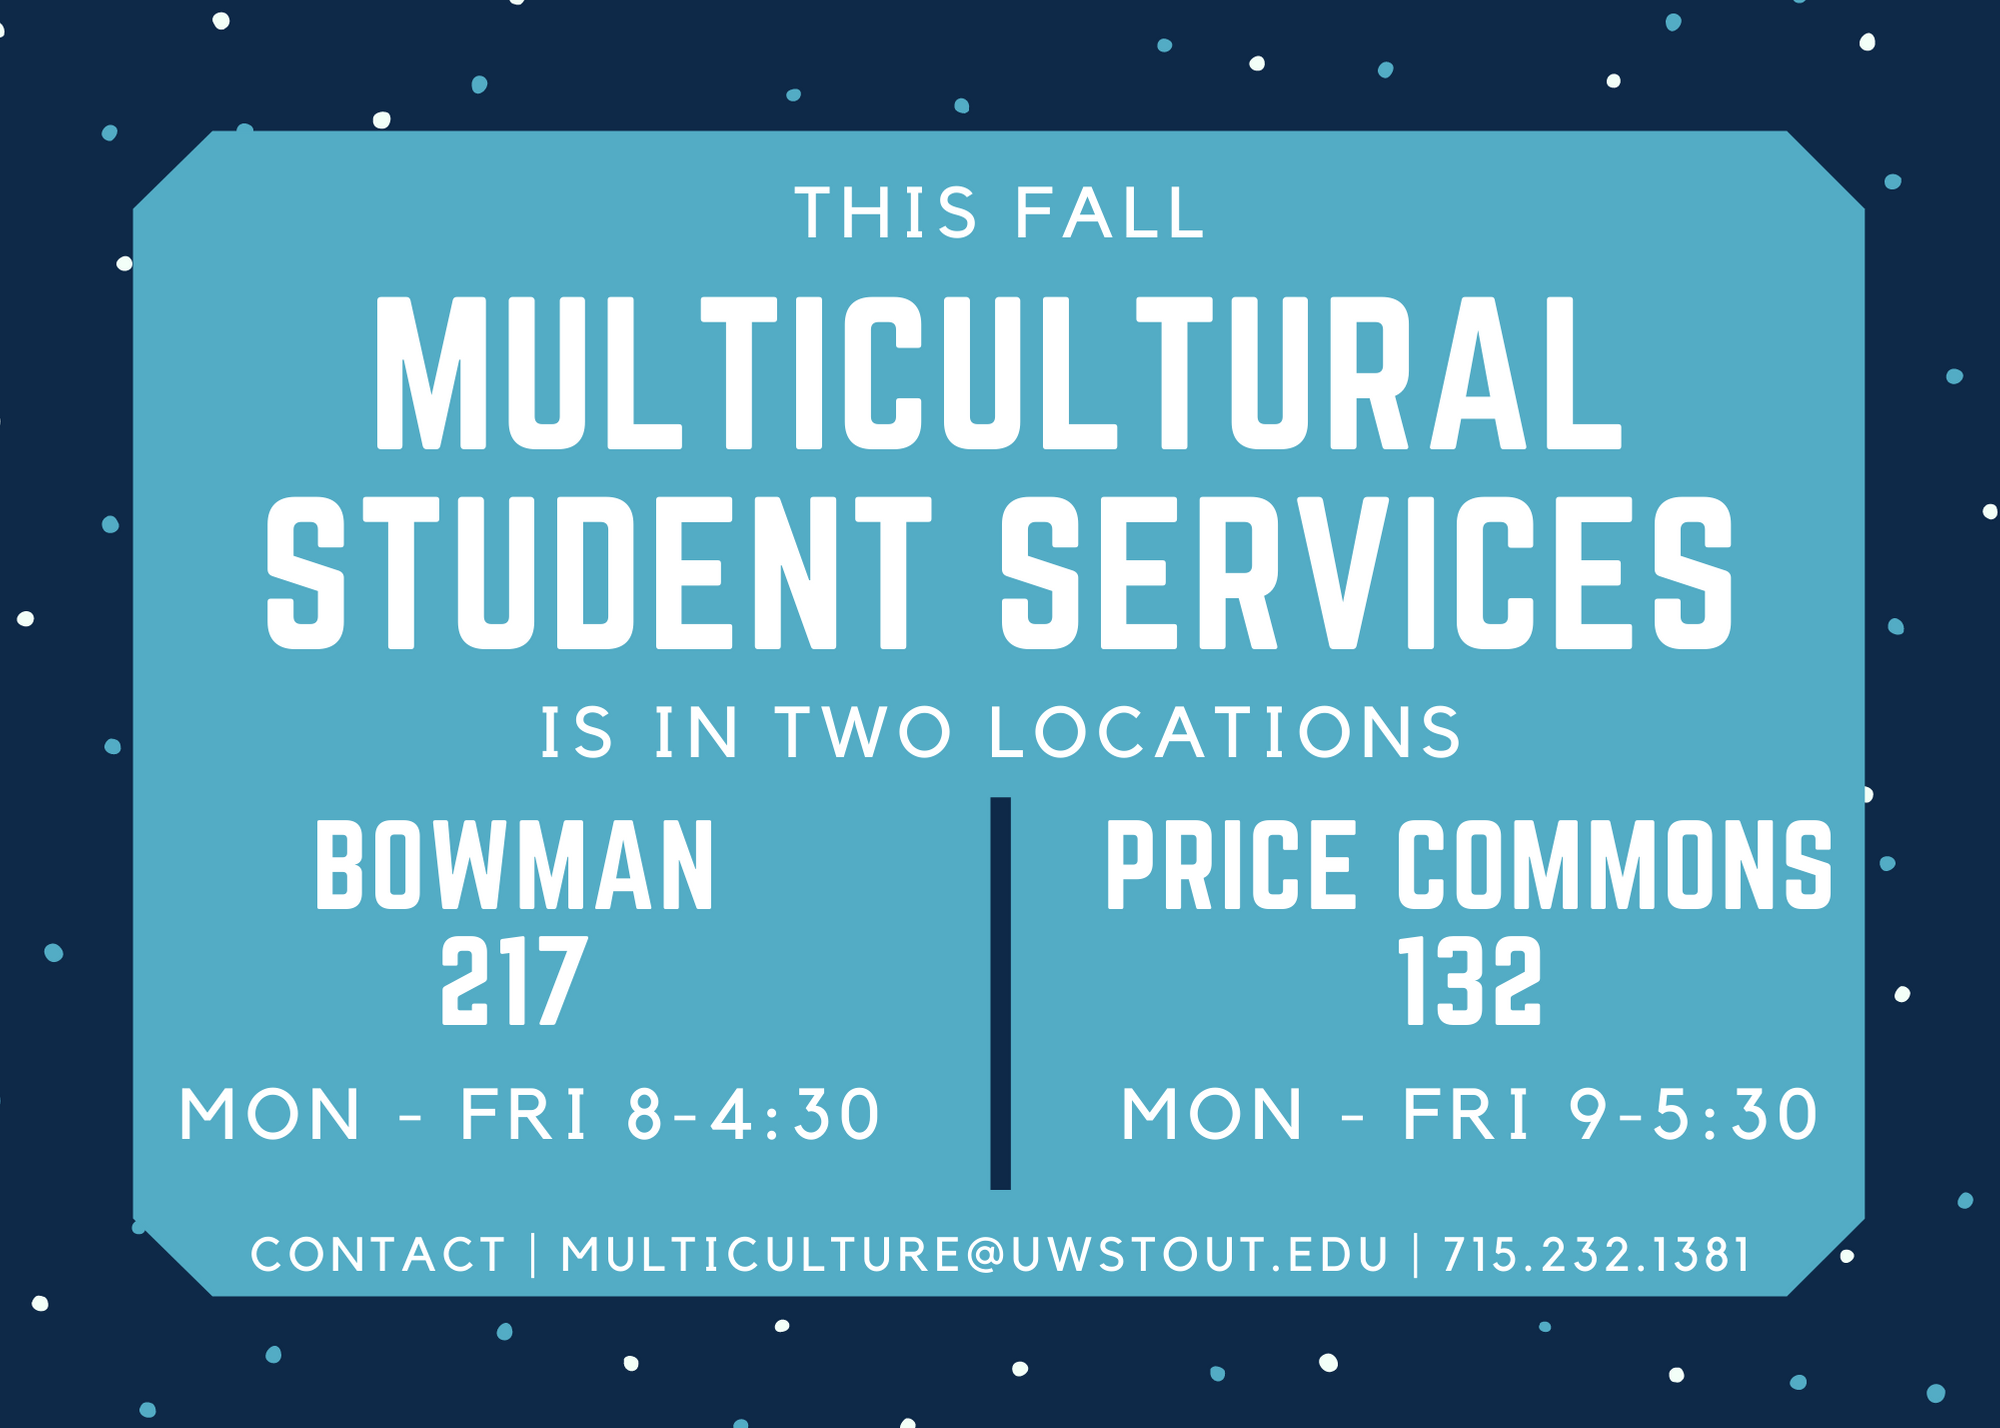 Multicultural Student Services fall hours